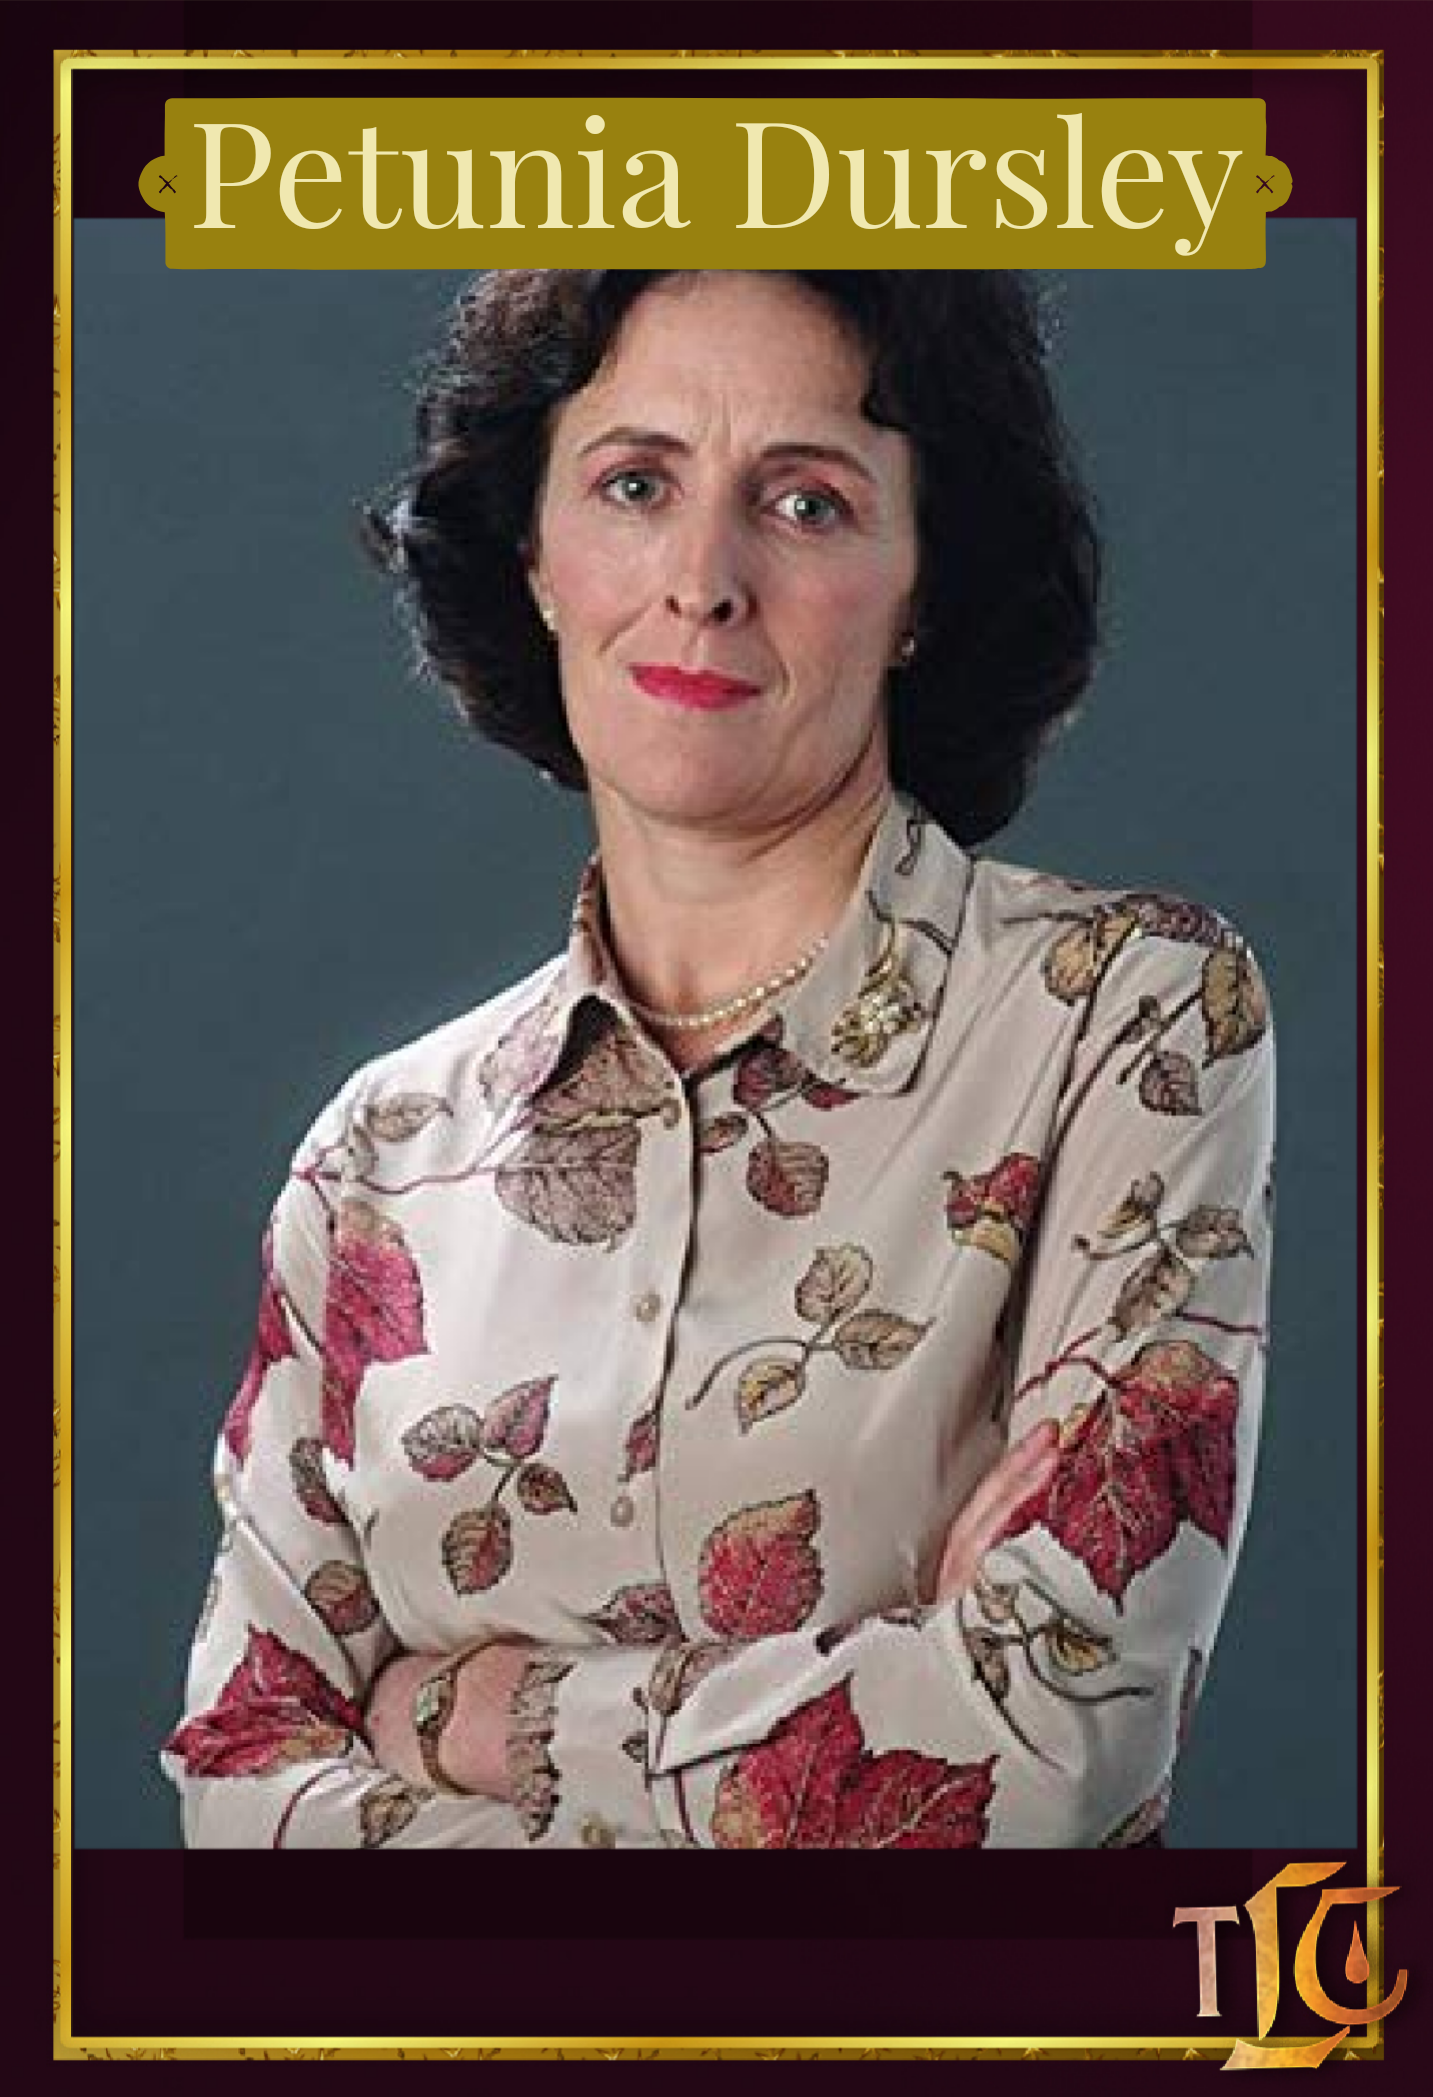 Leaky S Character Gallery Petunia Dursley Harry Potter Daniel Radcliffe Perfect Sisters